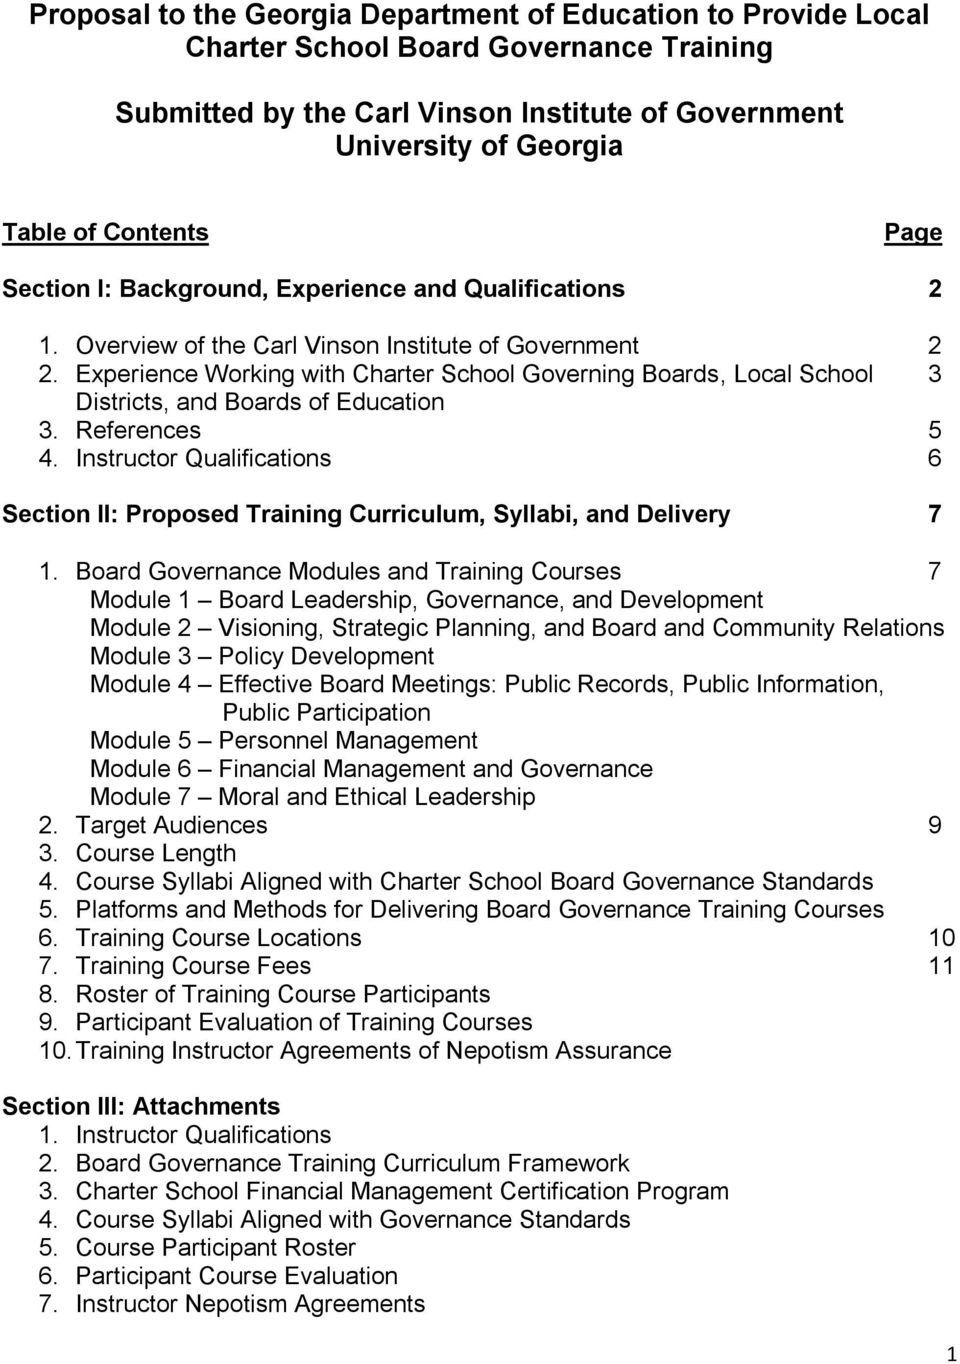 Review sample school proposals and write your own